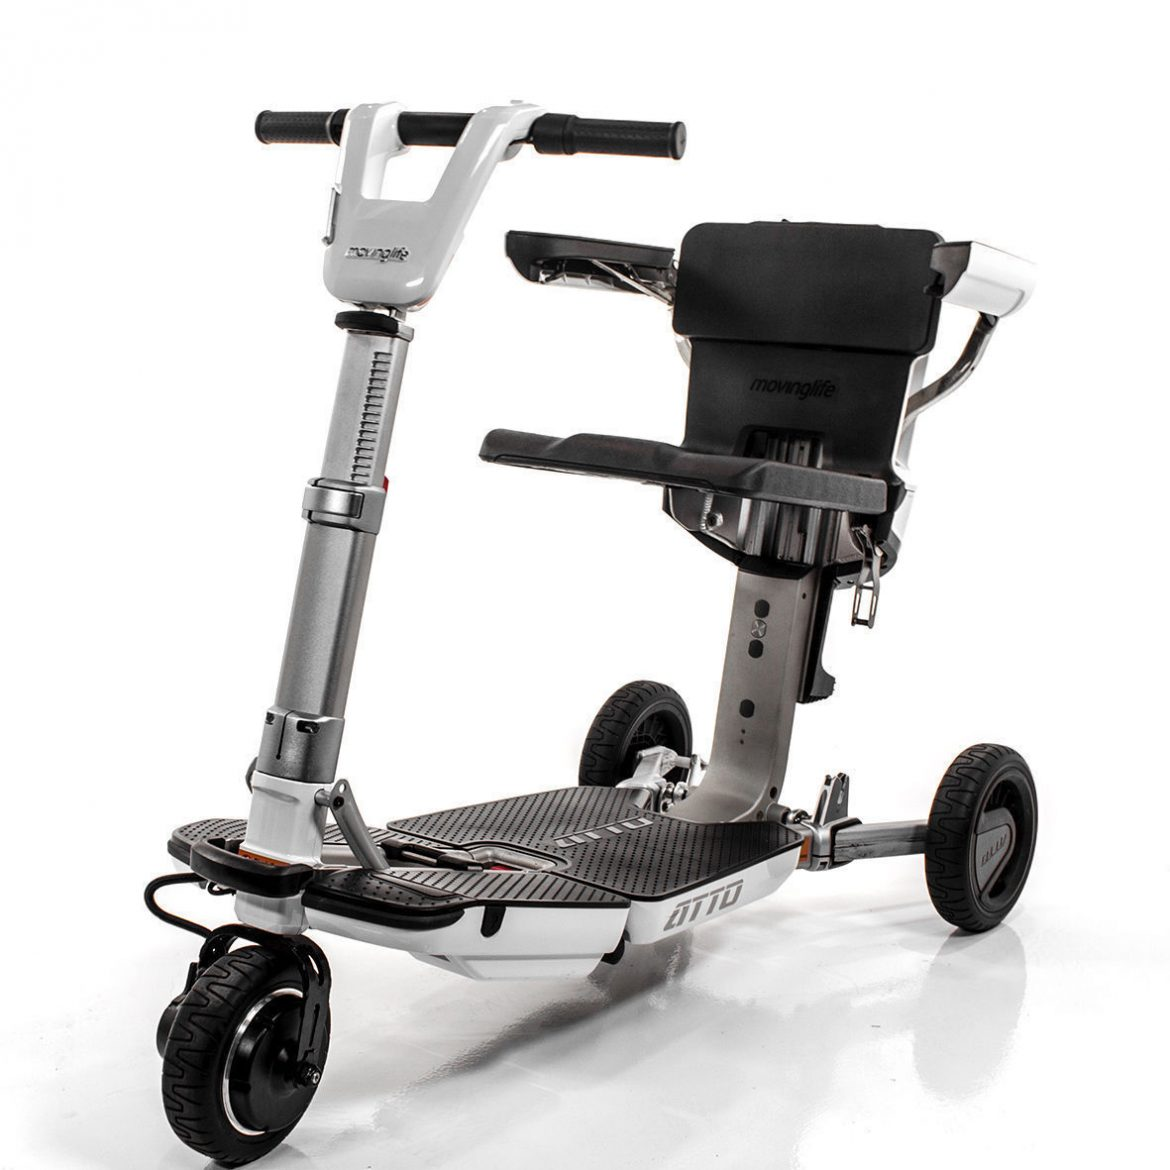 Atto Mobility Folding Scooter Price Breaker